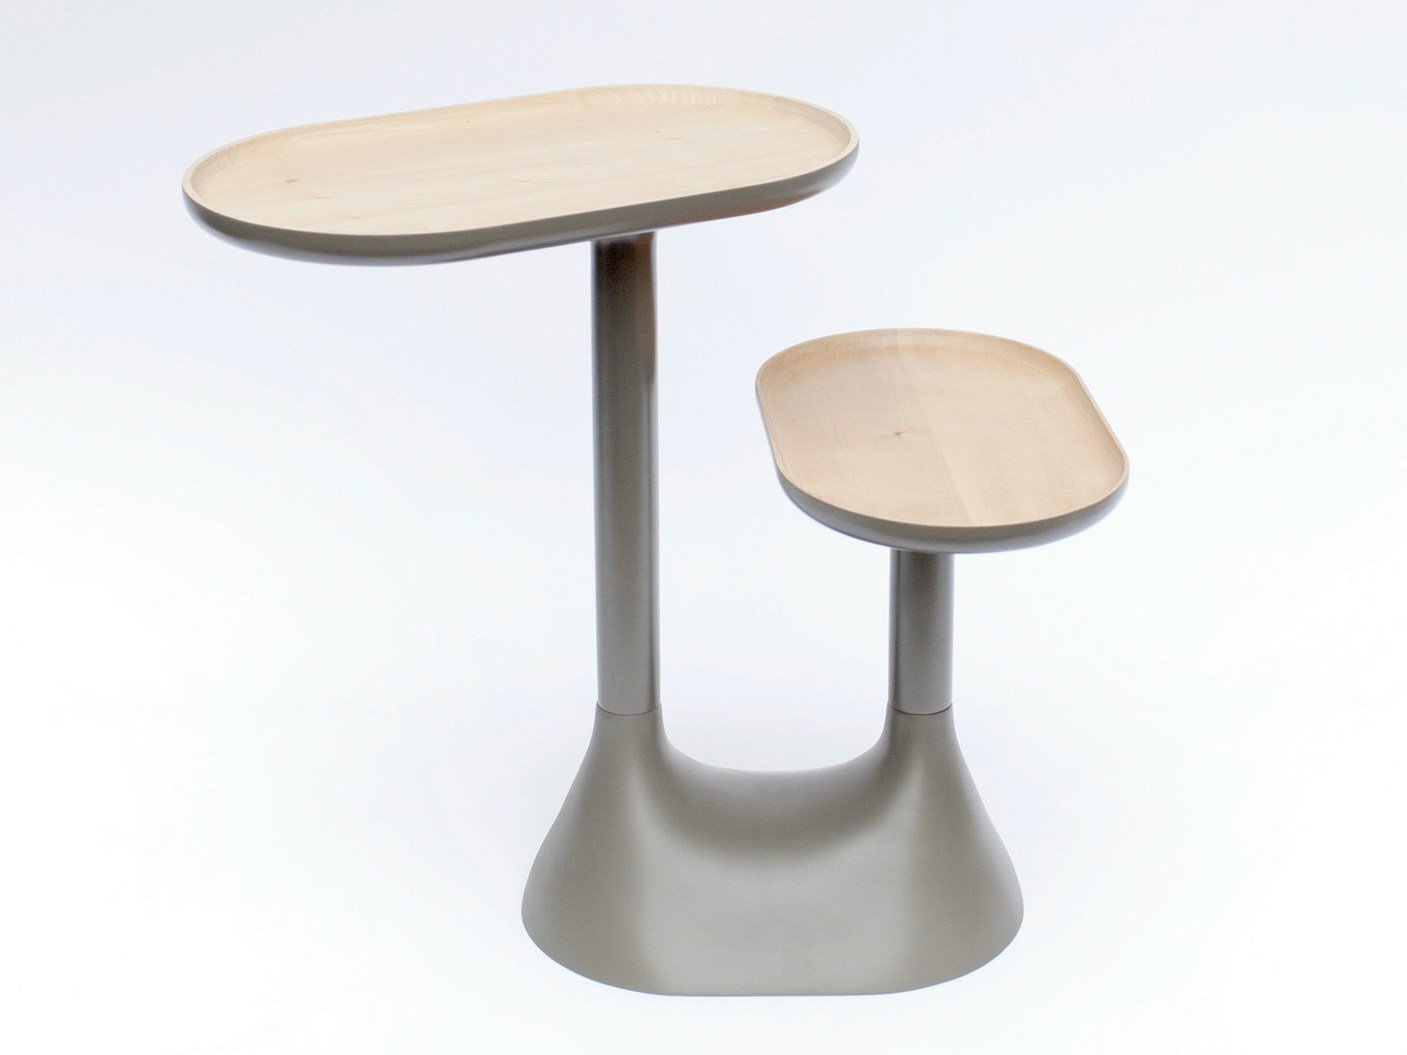 Table basse pivotante en bois baobab by moustache design ionna vautrin - Table basse pivotante ...